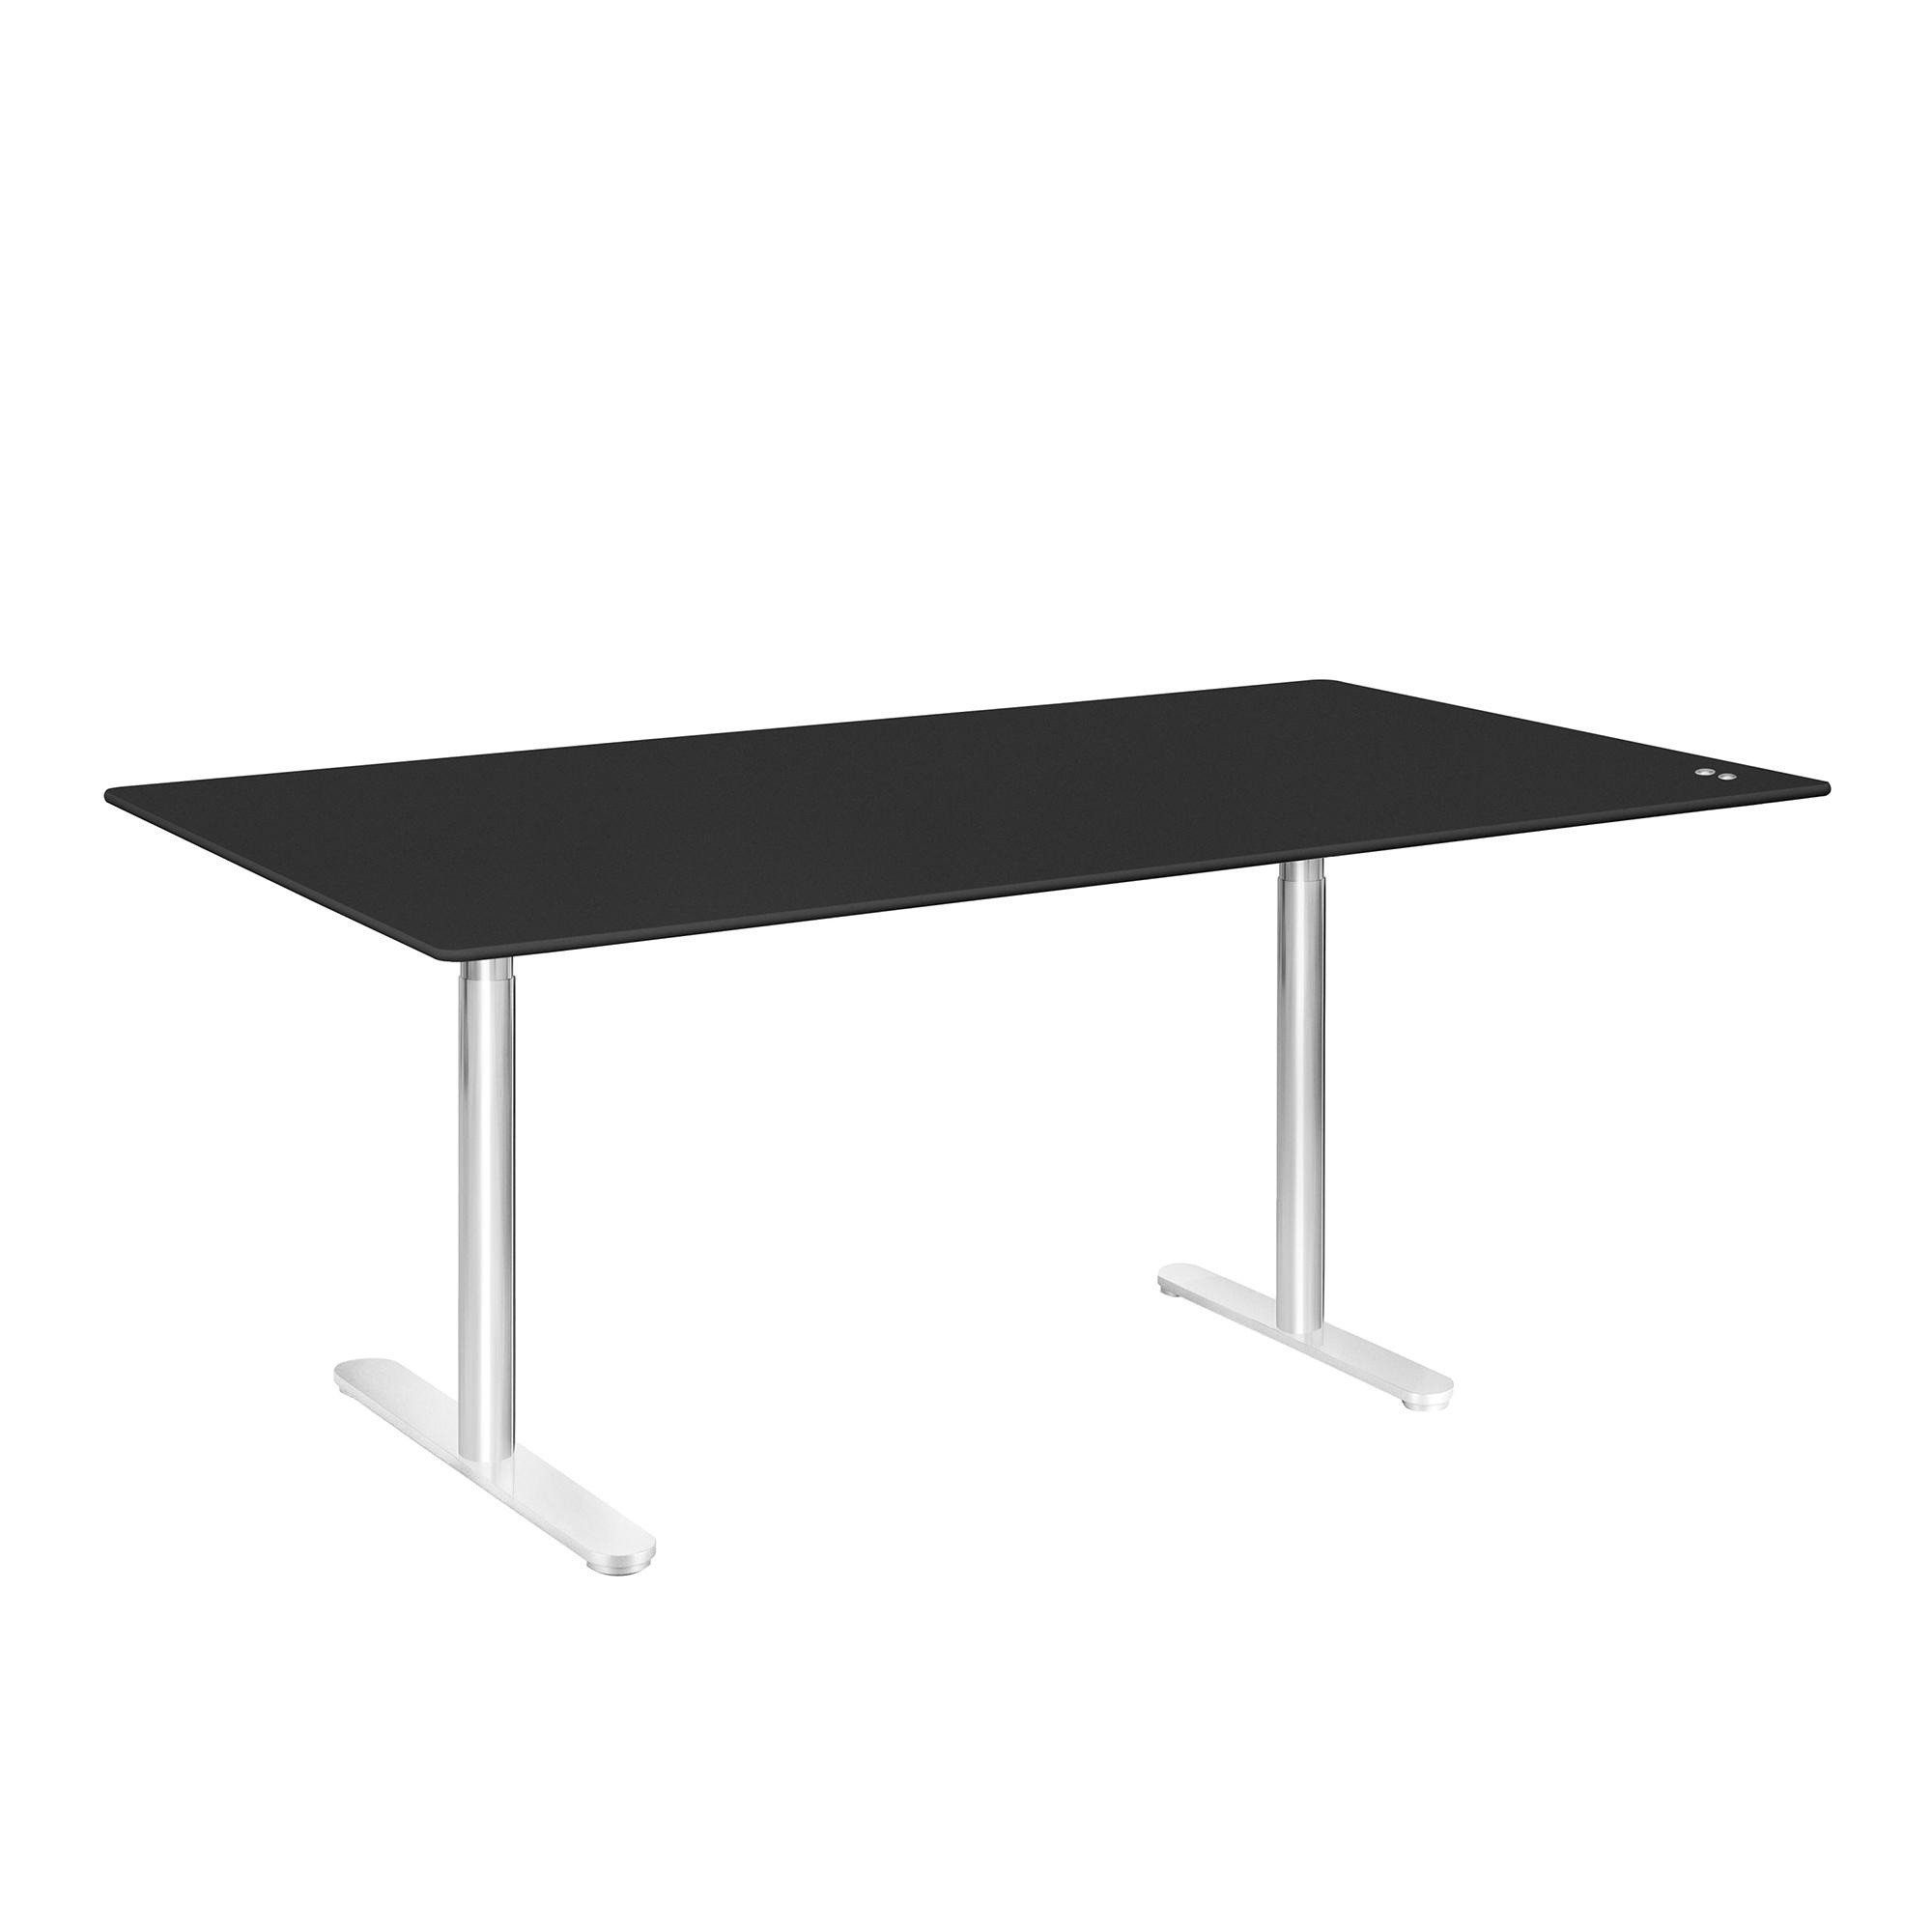 Schreibtisch Design Sale Hilow 2 Office Table 80x180cm